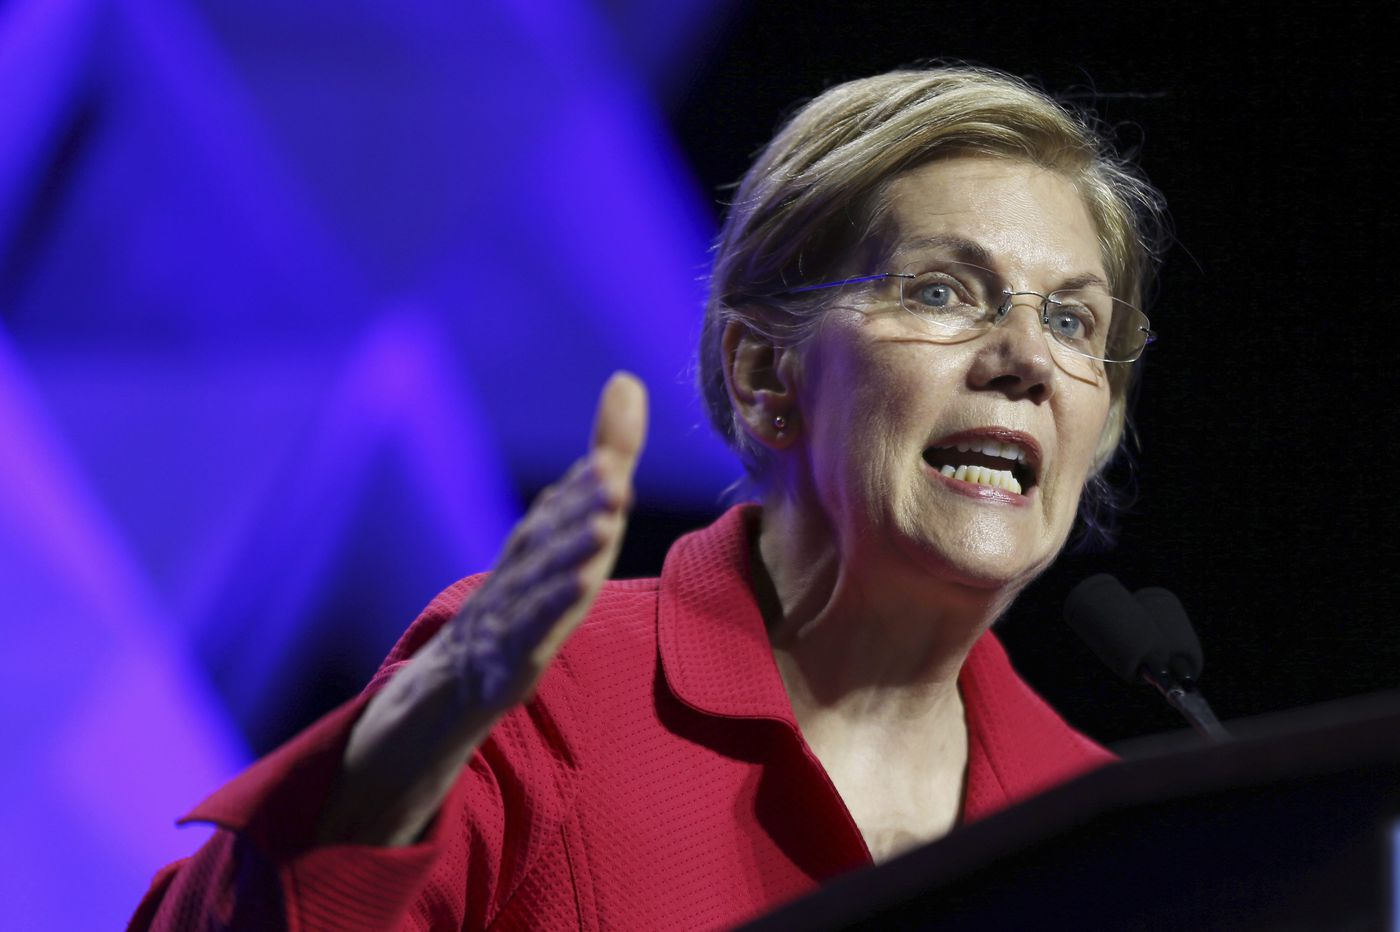 Elizabeth Warren's DNA test: How reliable is it? A Penn prof explains